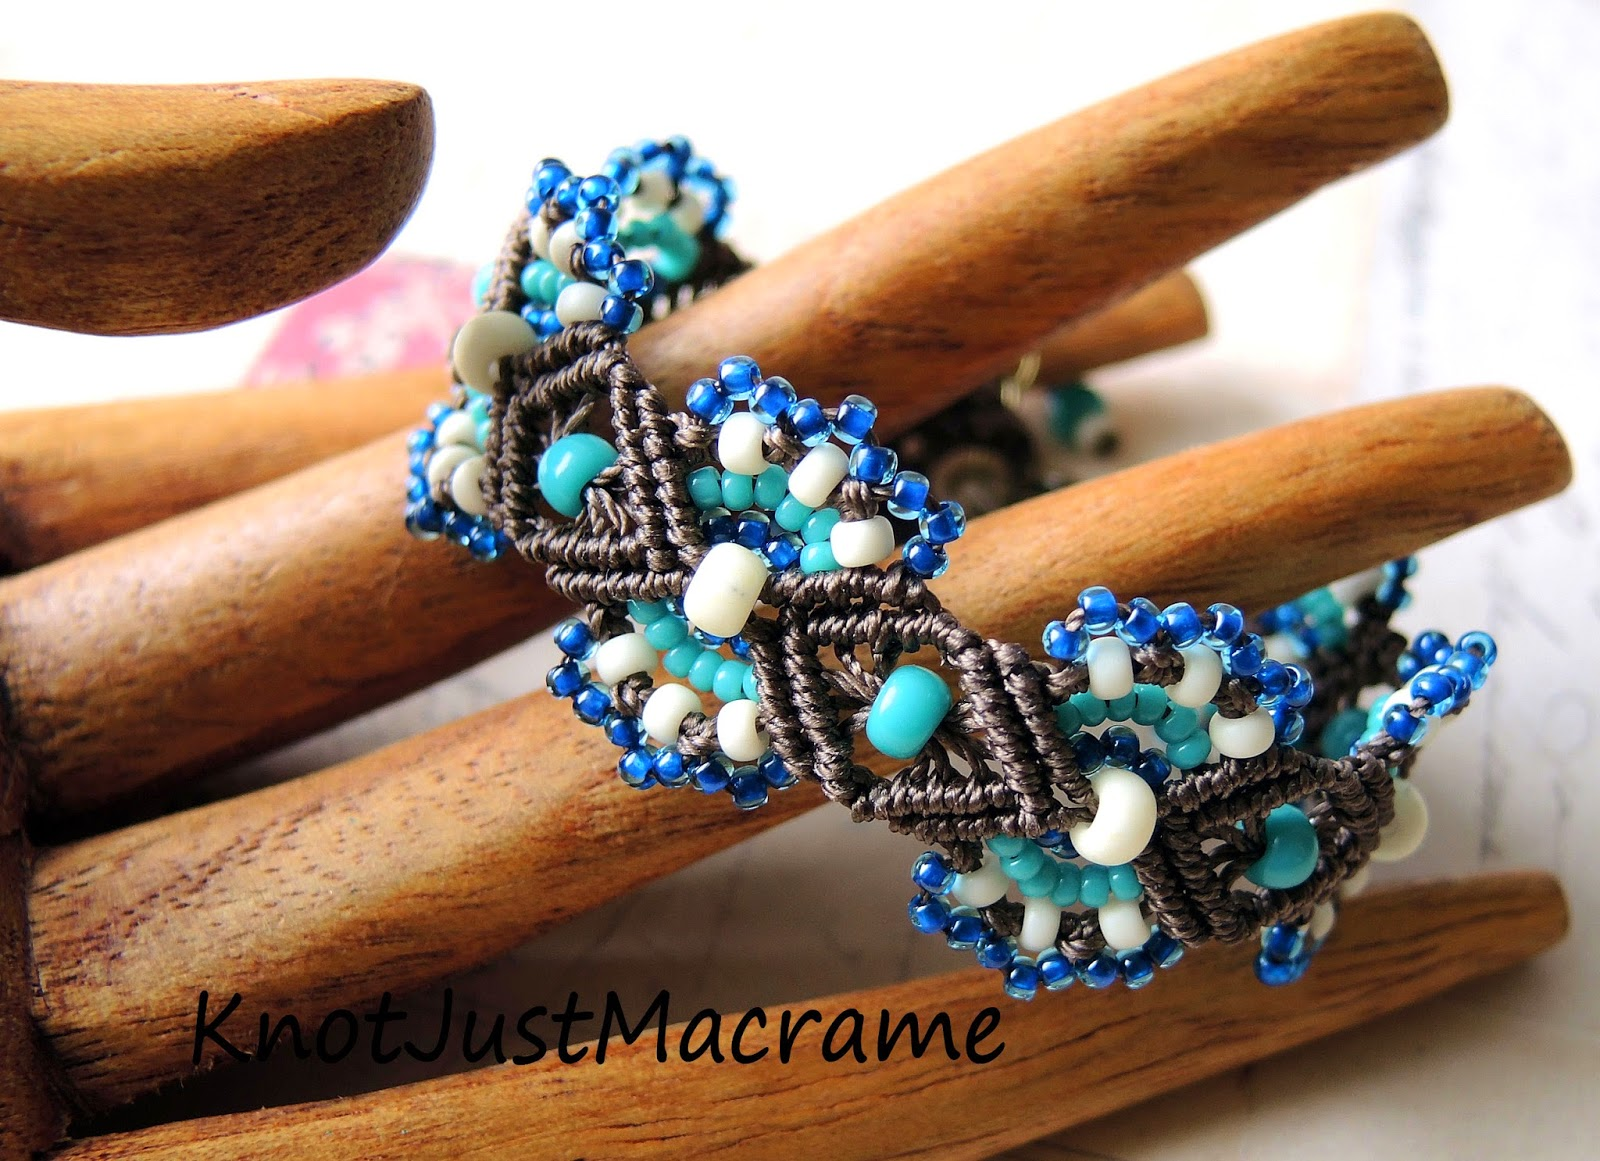 Handmade bracelet - knotted micro macrame in brown, turquoise and blue.